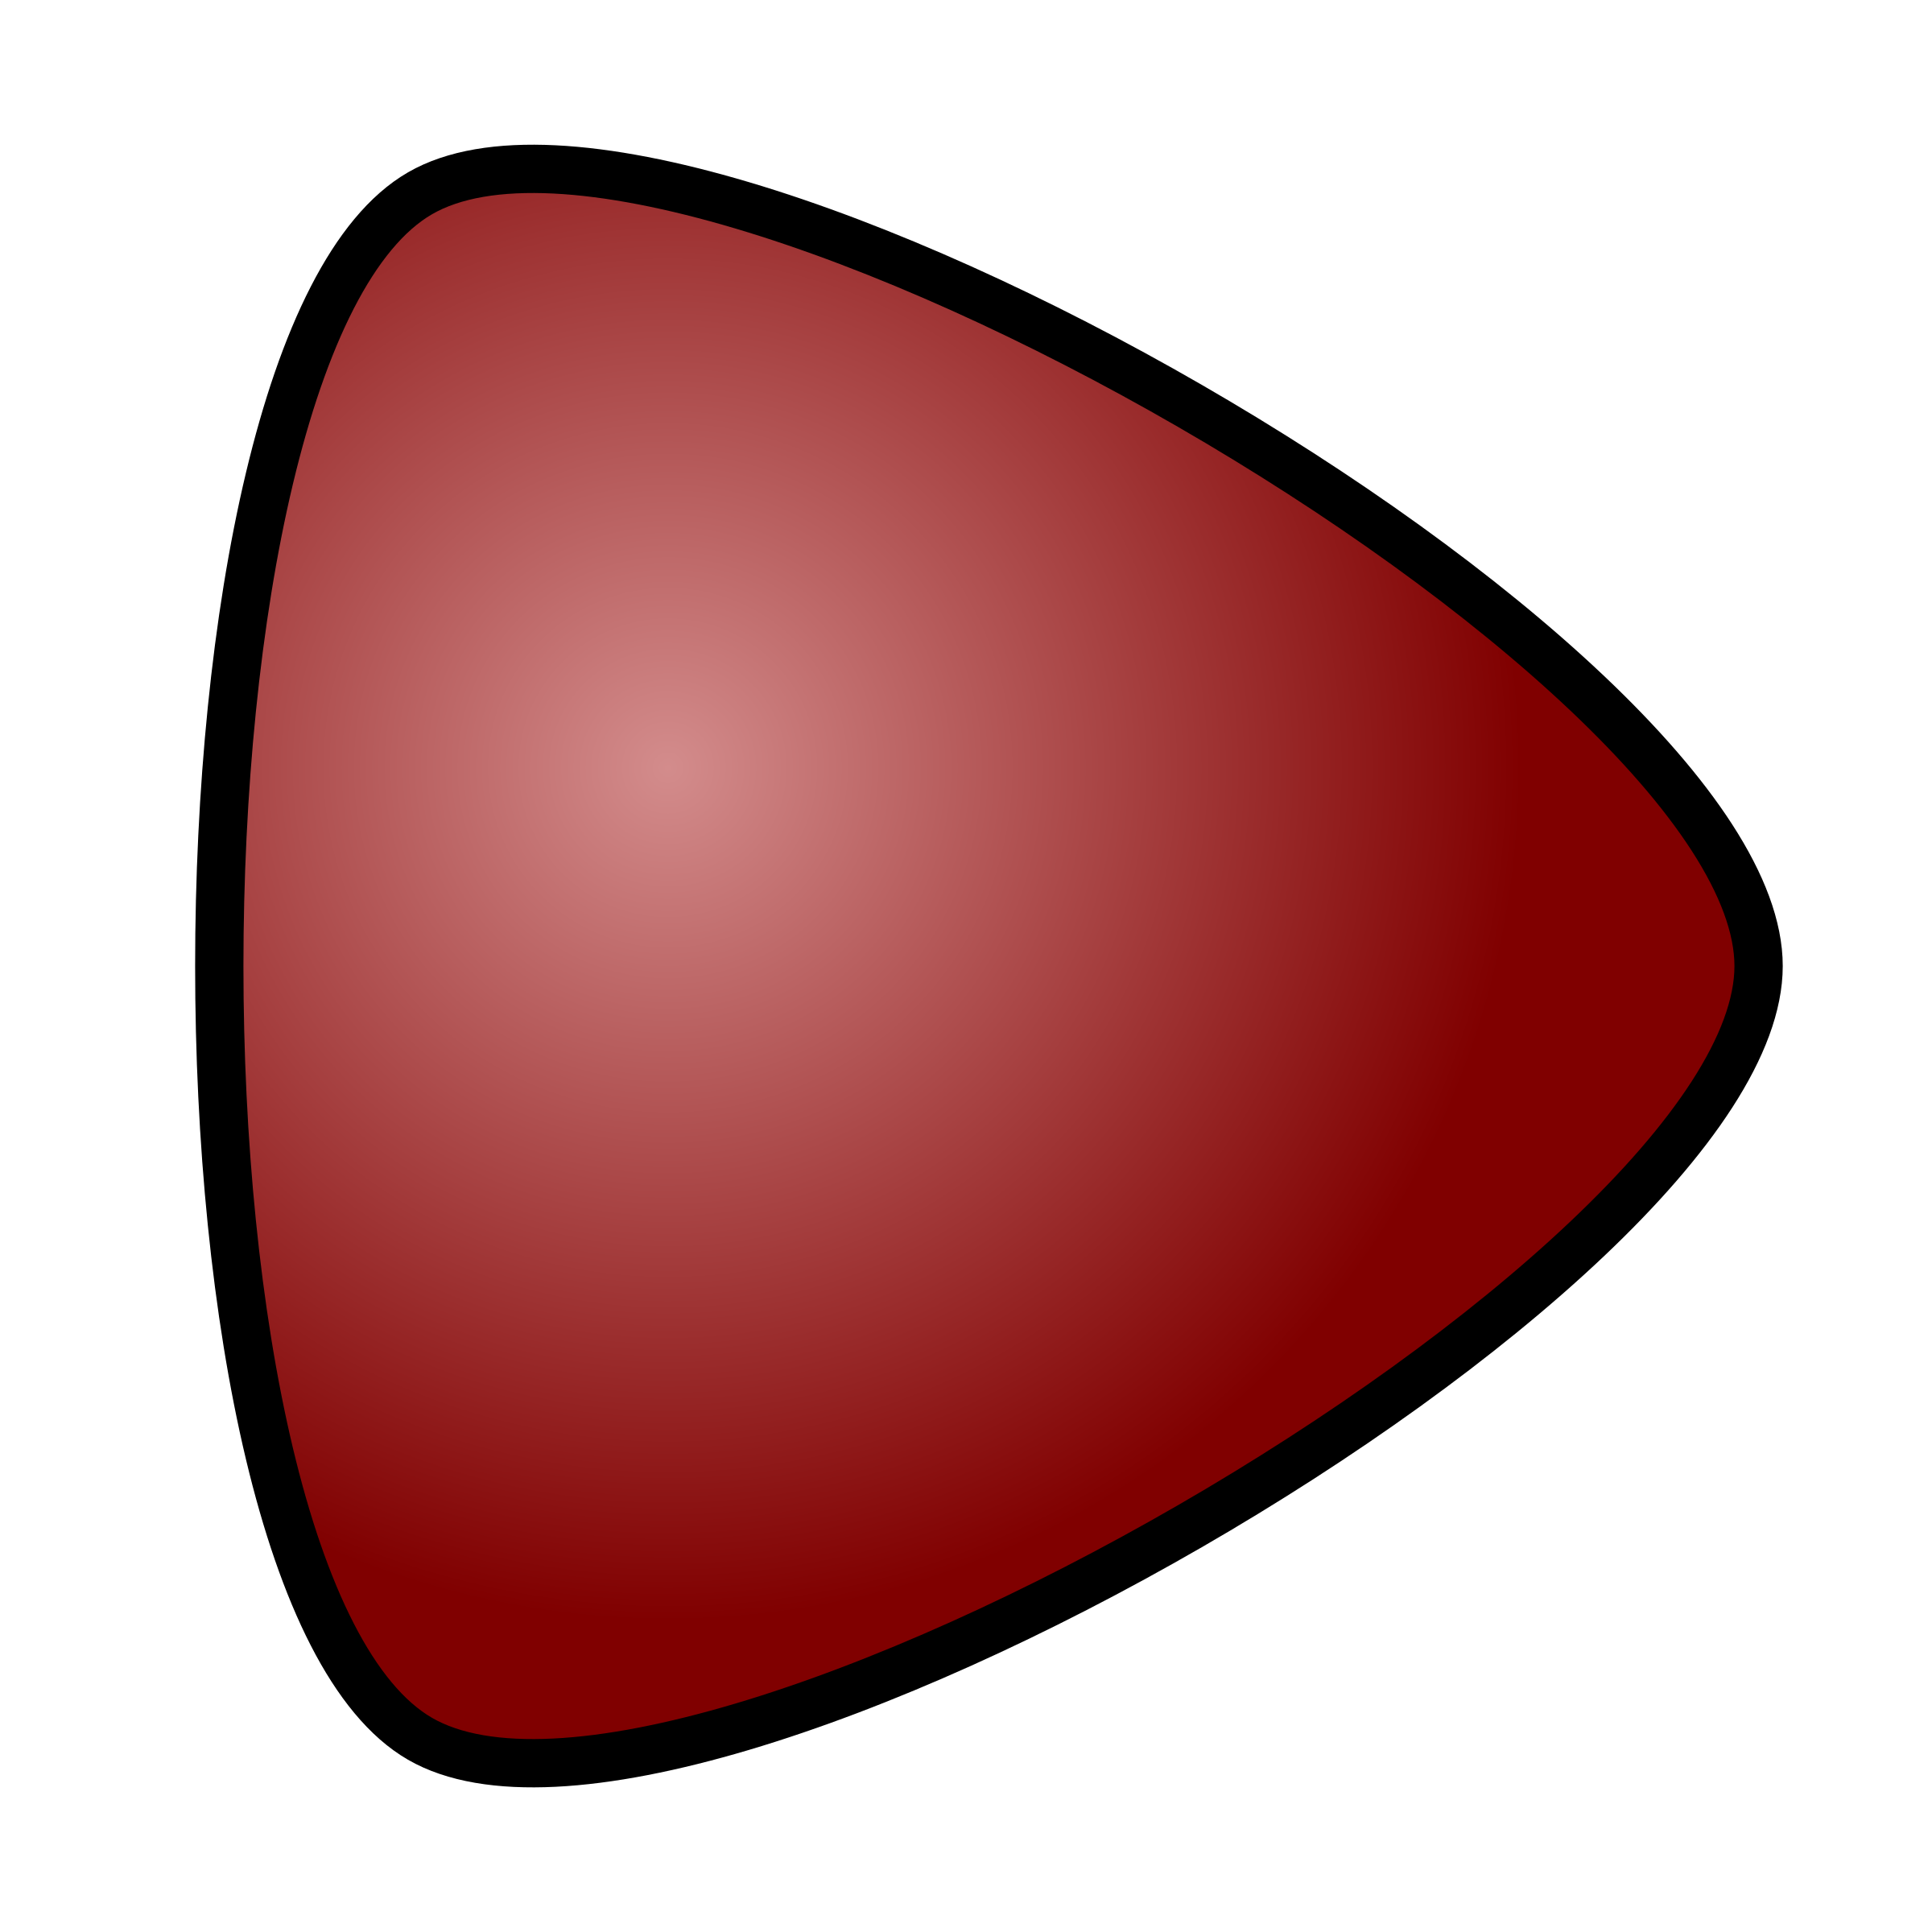 Red play button png. For media player icons